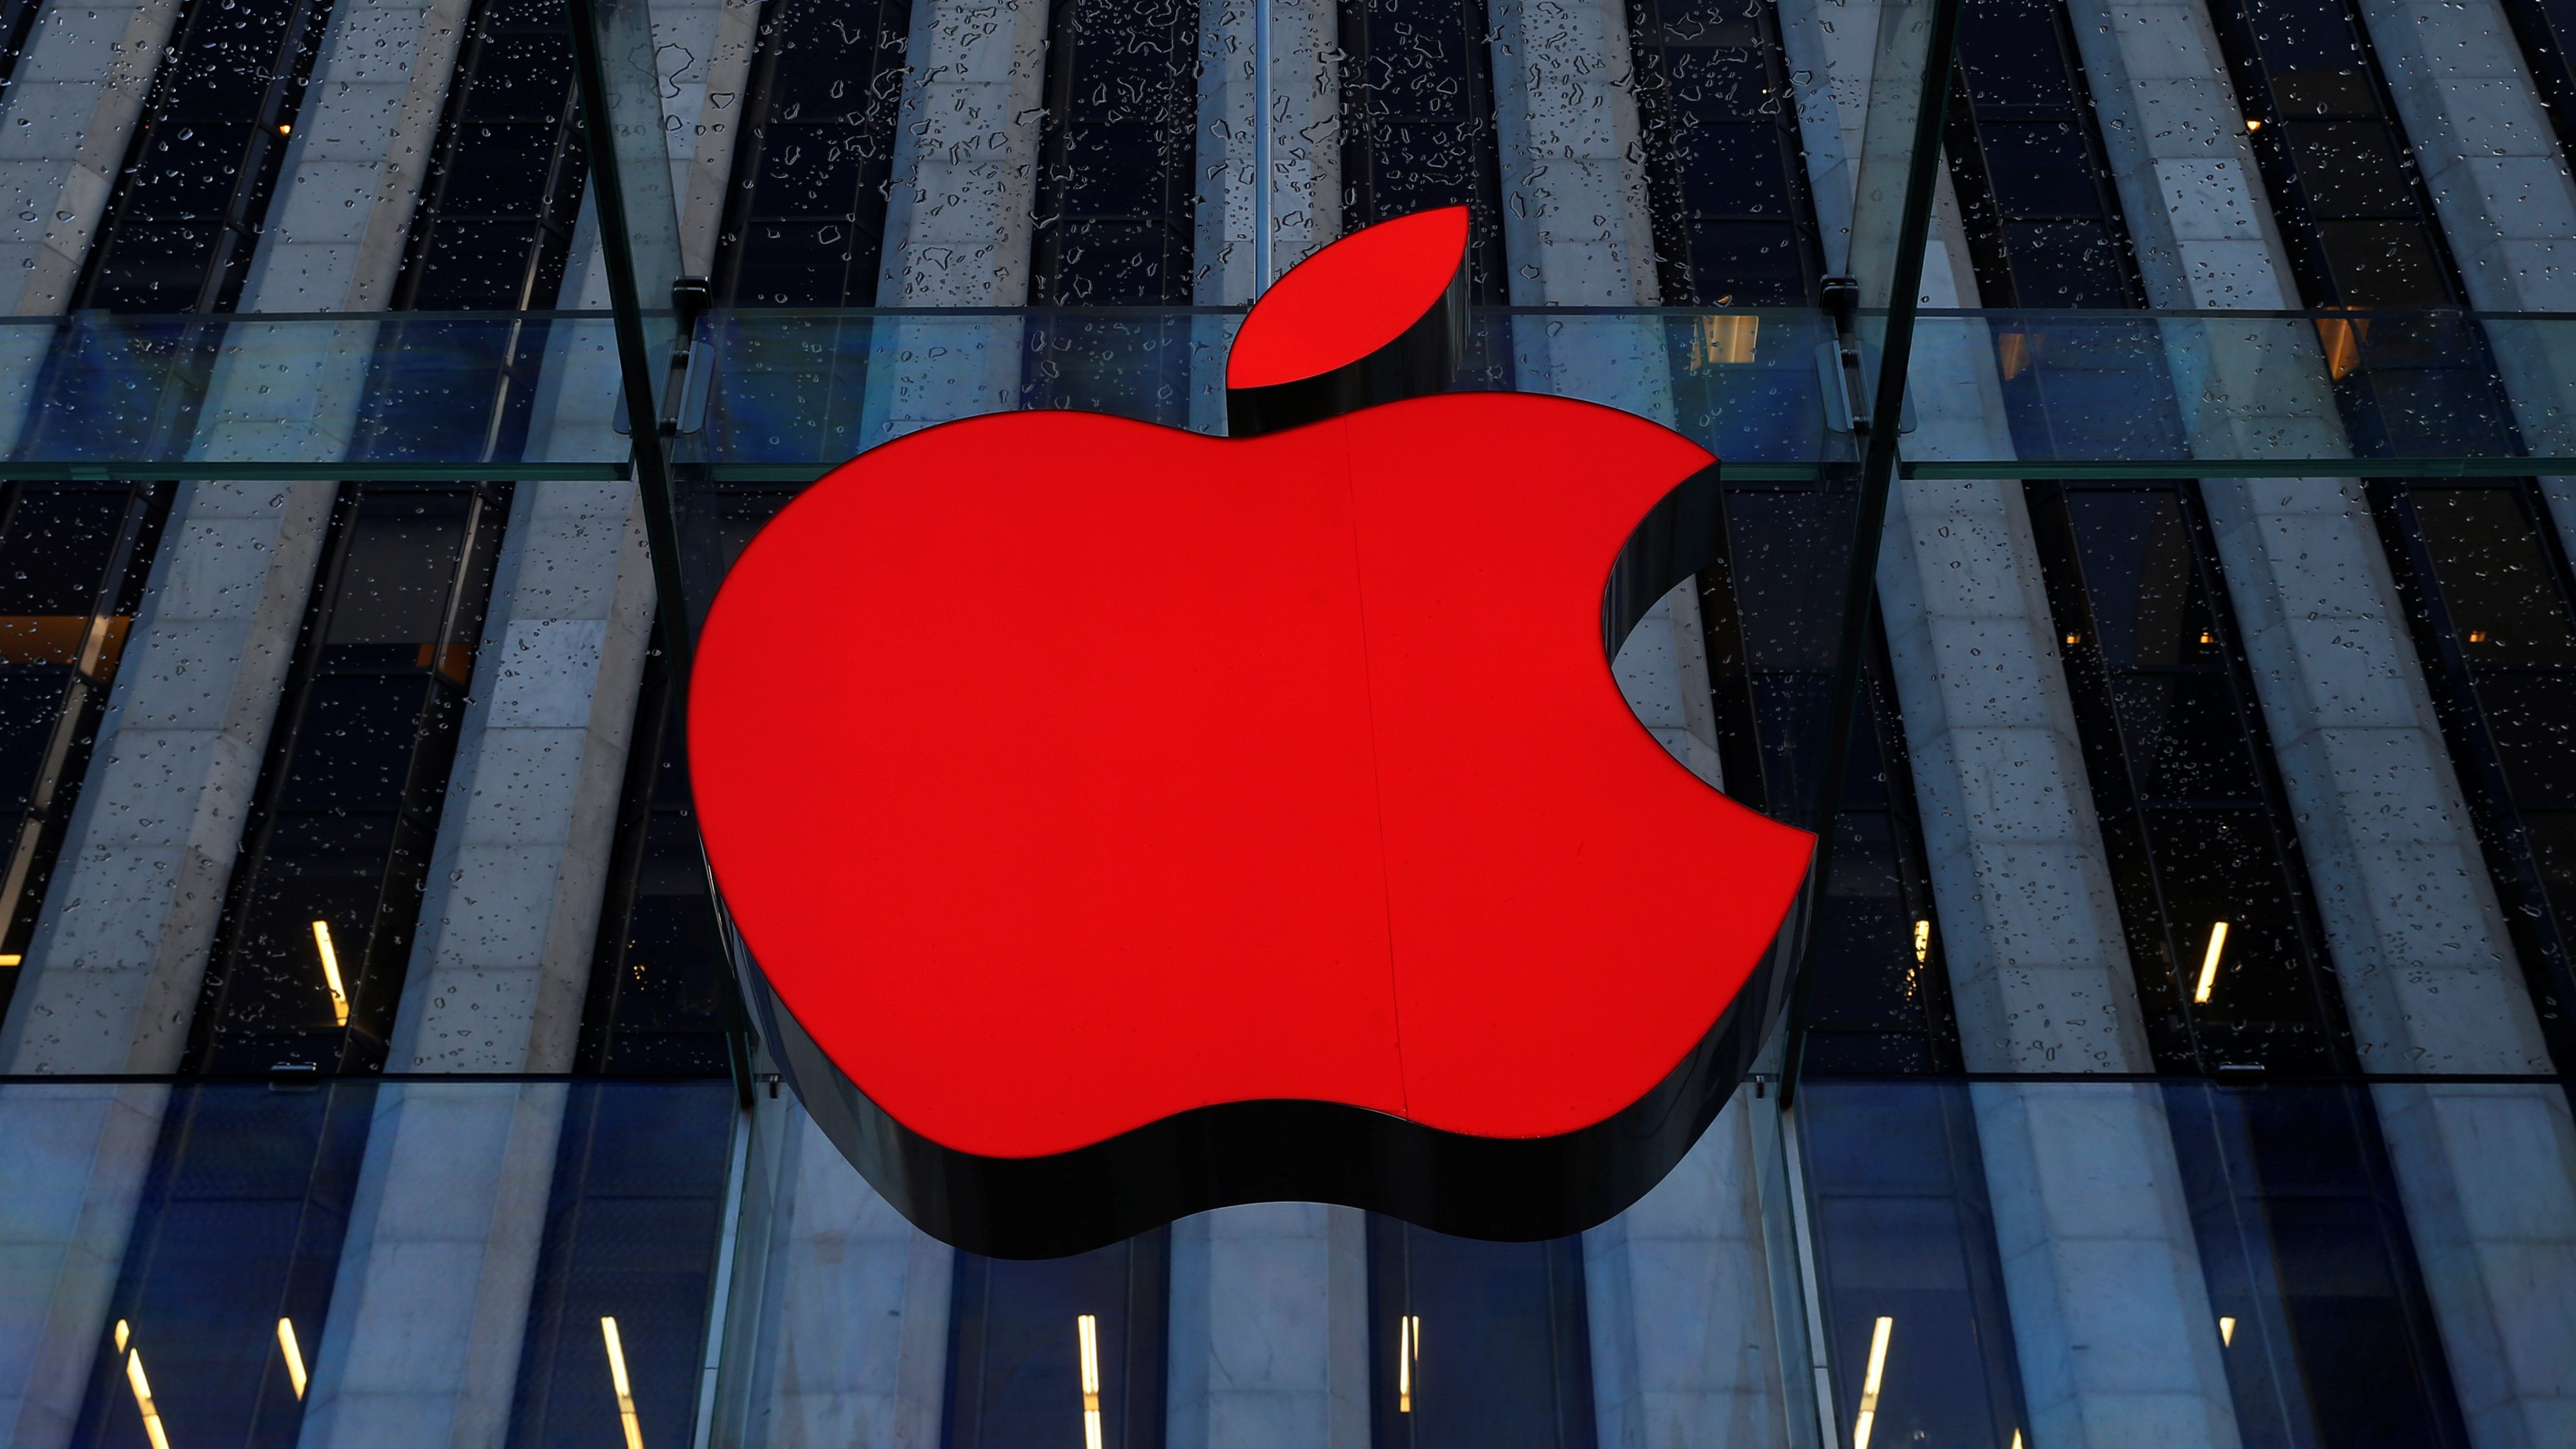 An Apple logo hangs above the entrance to the Apple store on 5th Avenue in the Manhattan borough of New York City, U.S., December 5, 2016.